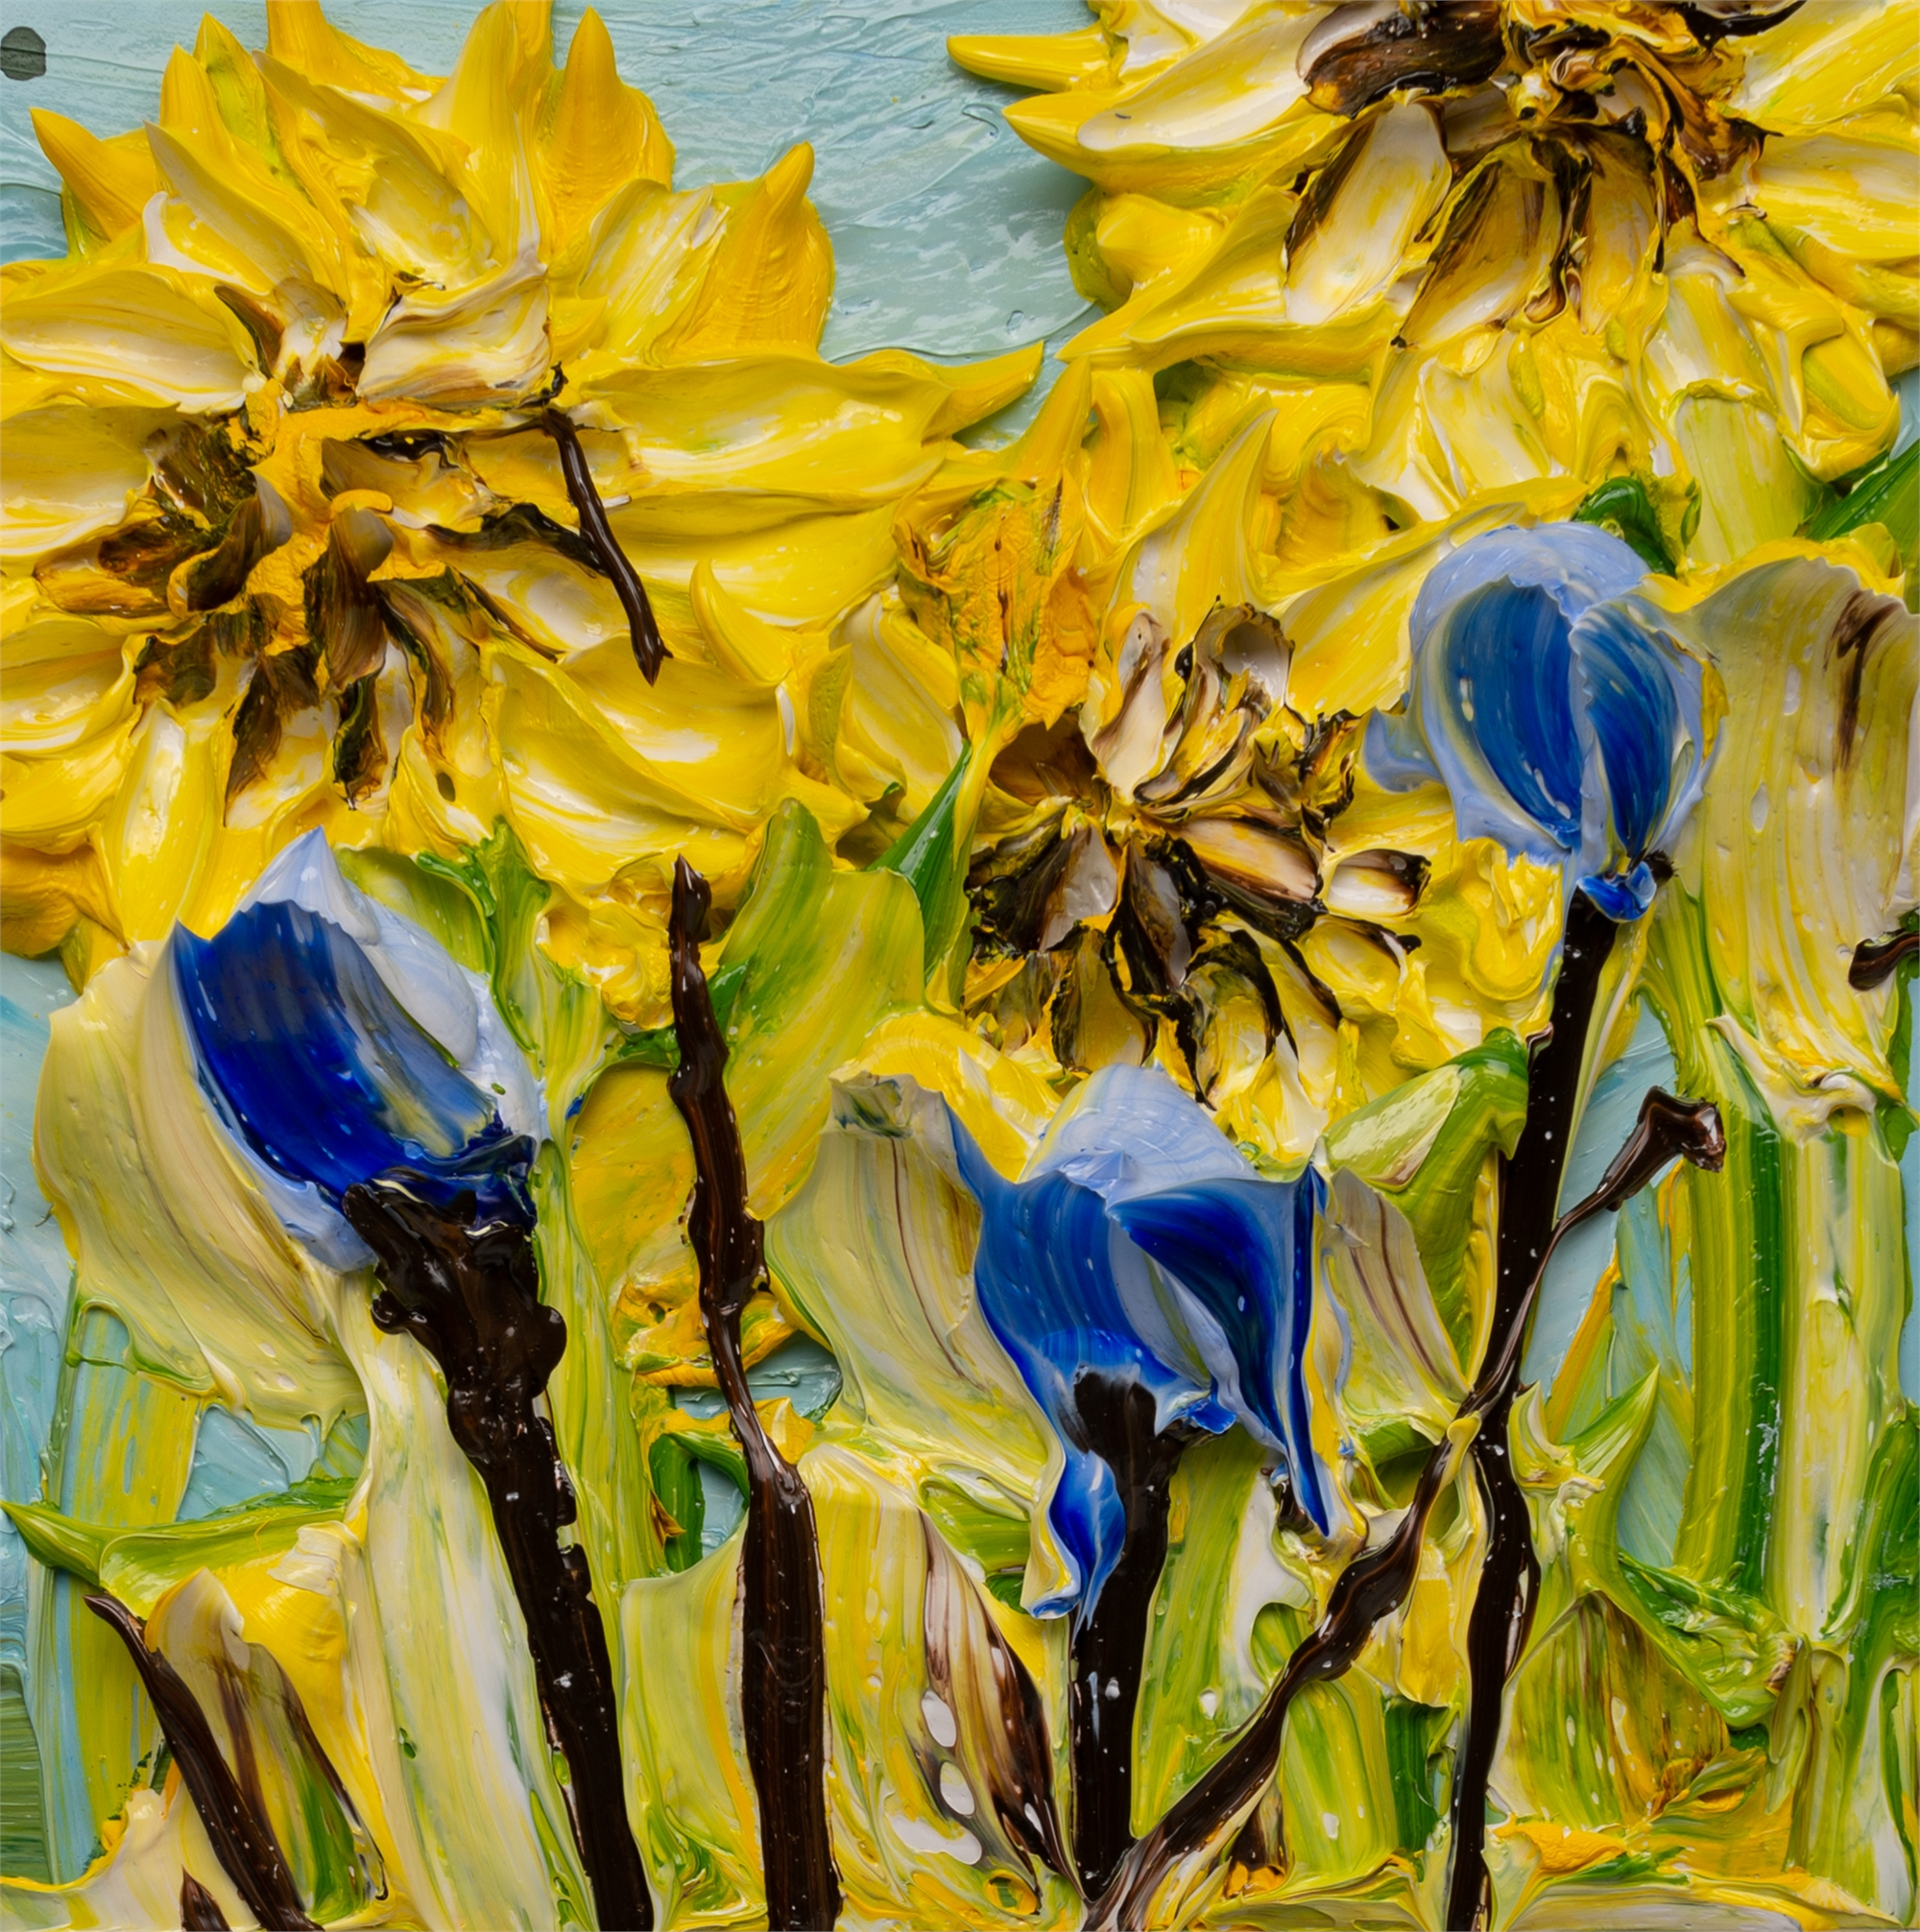 SUNFLOWERS SF-12X12-2019-384 by JUSTIN GAFFREY